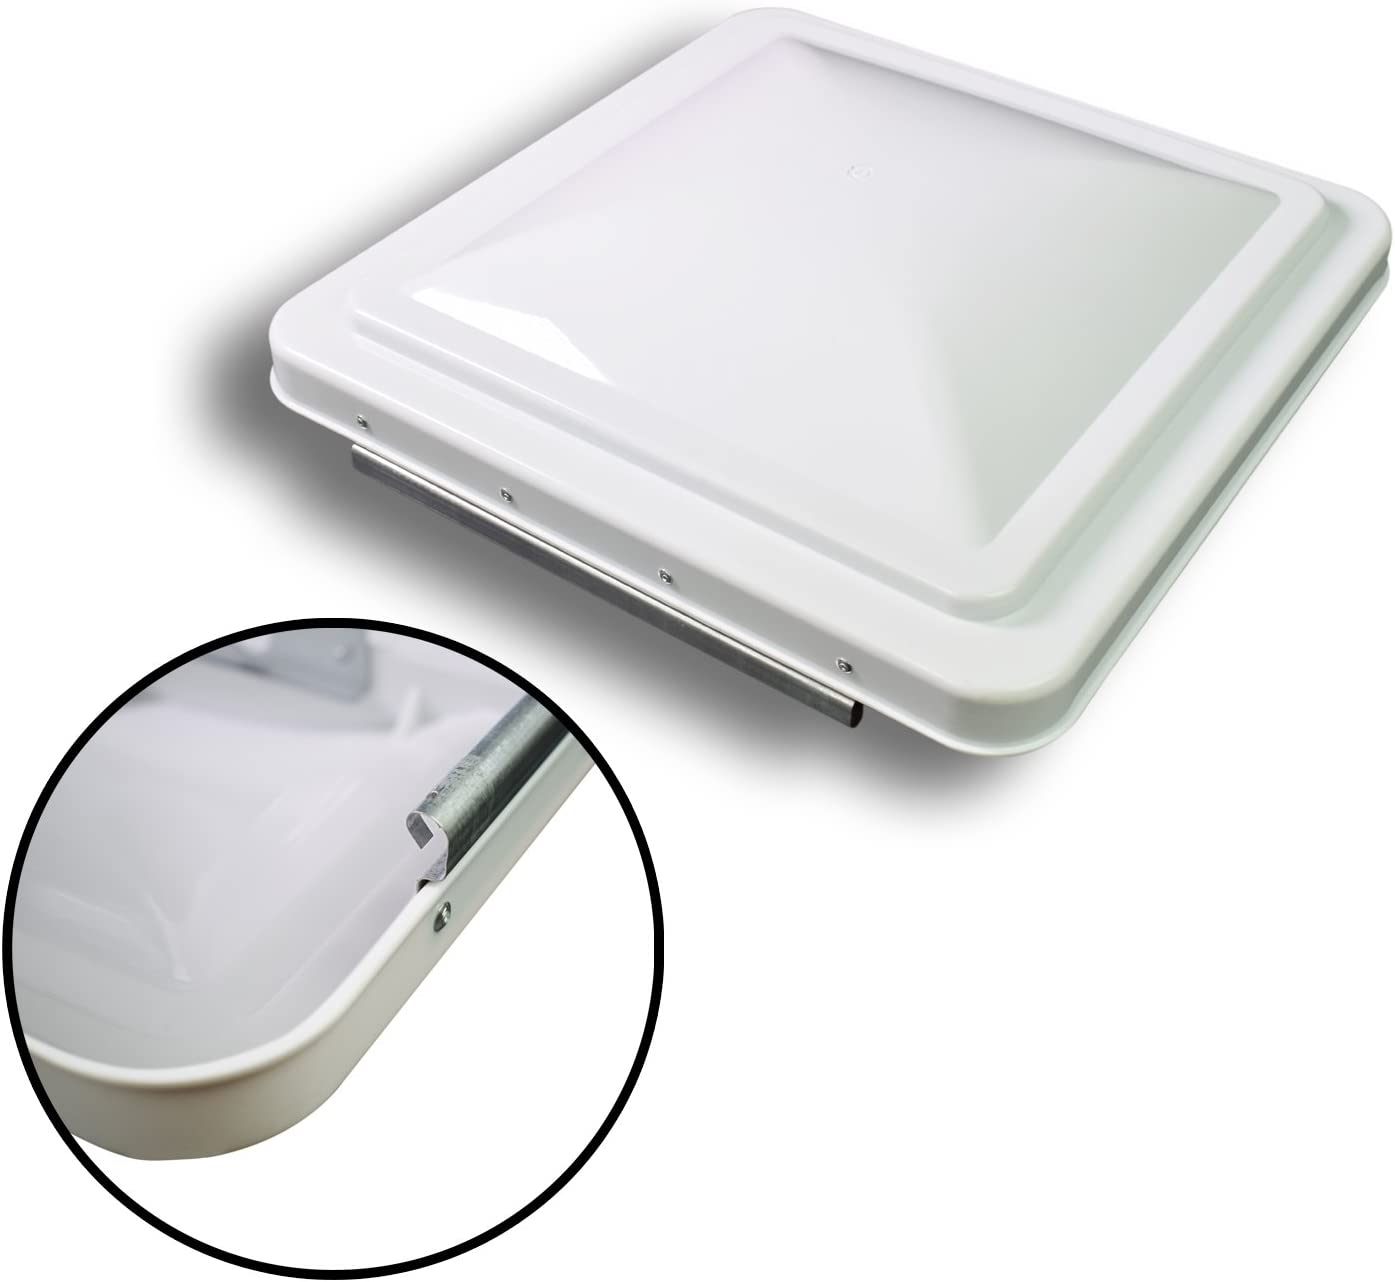 Leisure 14 Inch RV Roof Vent Cover Universal Replacement Vent Lid White for Camper Trailer Motorhome